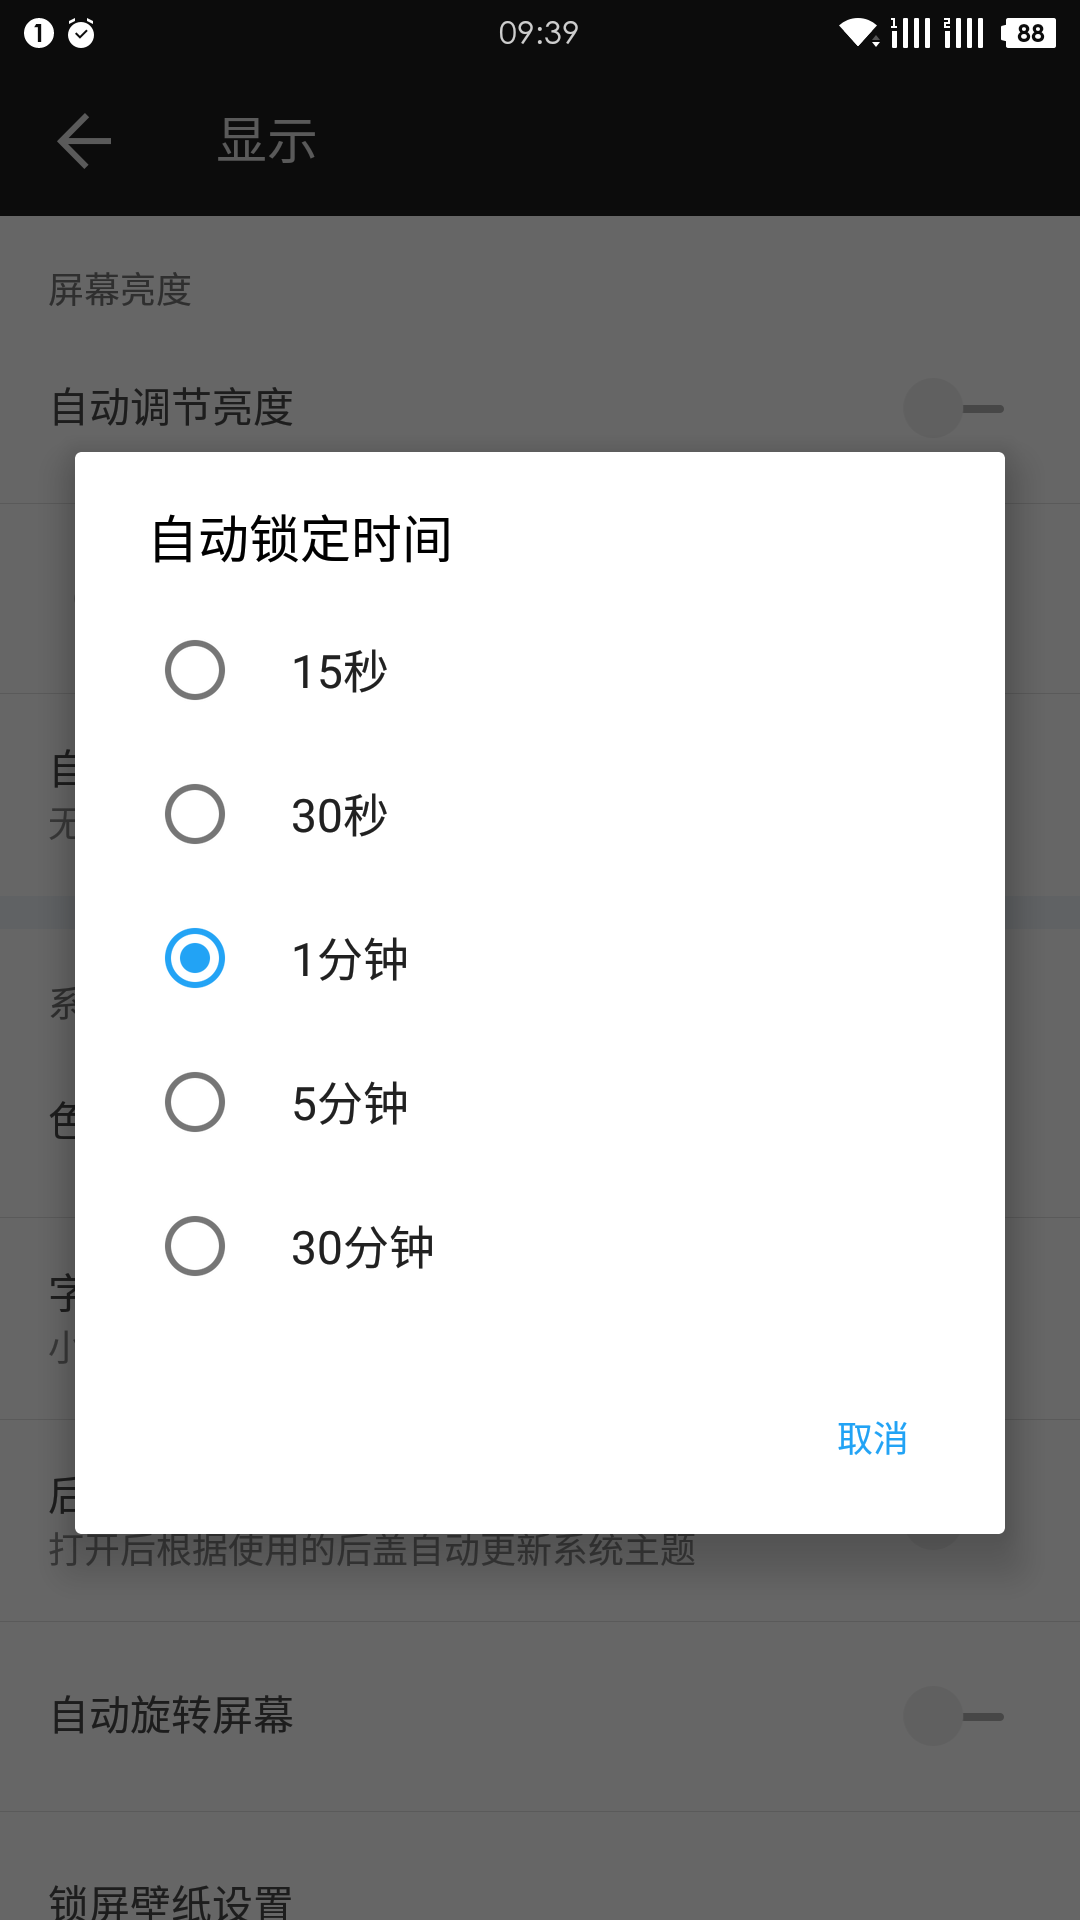 Screenshot_2015-12-03-09-39-07.png